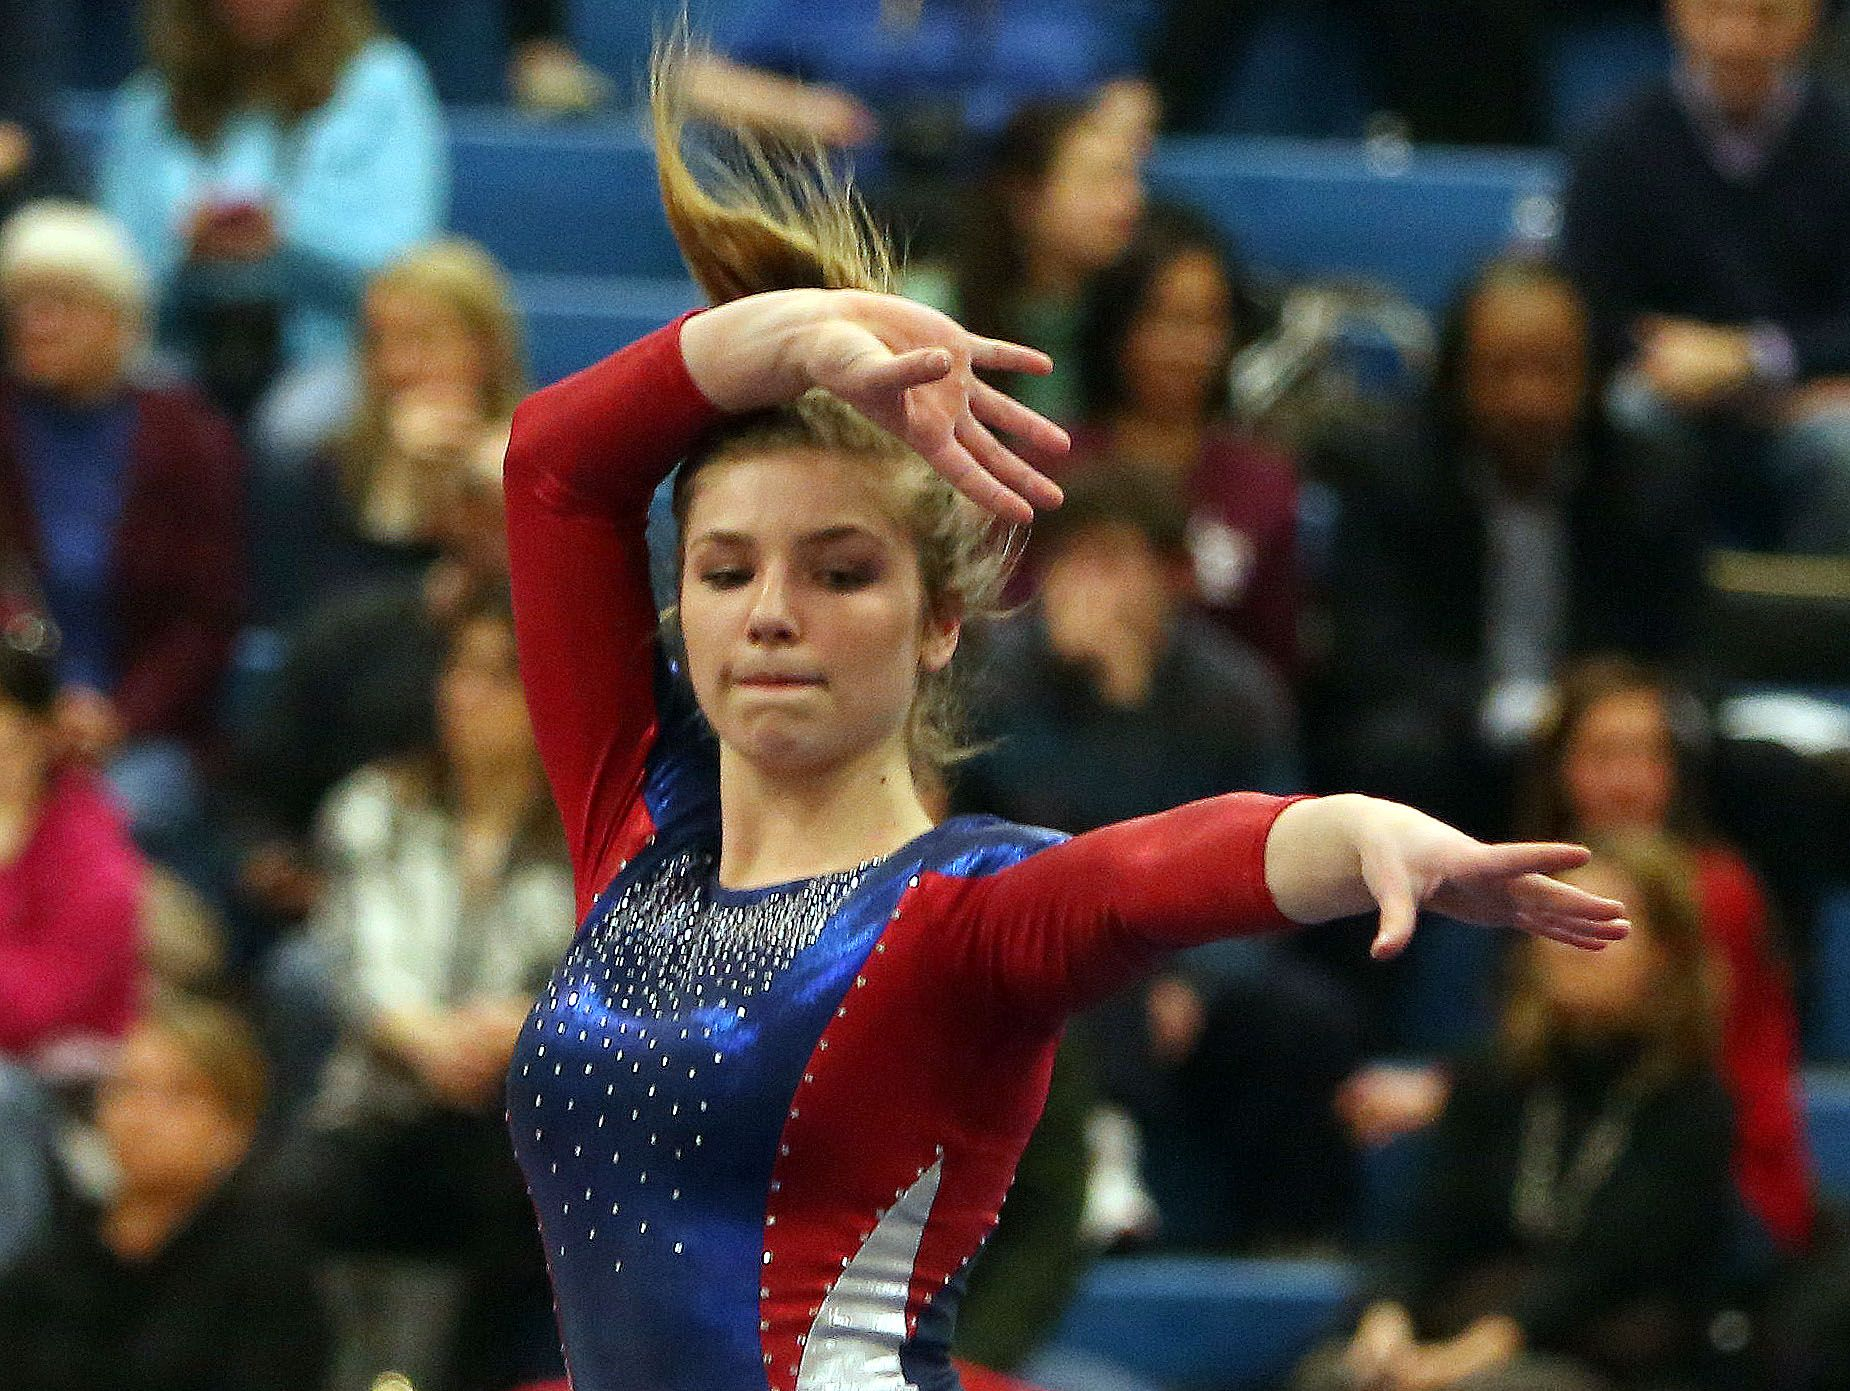 Wappingers' Olivia Frederick competes in the floor exercise during the Section 1 gymnastics championship at Carmel High School on Tuesday.